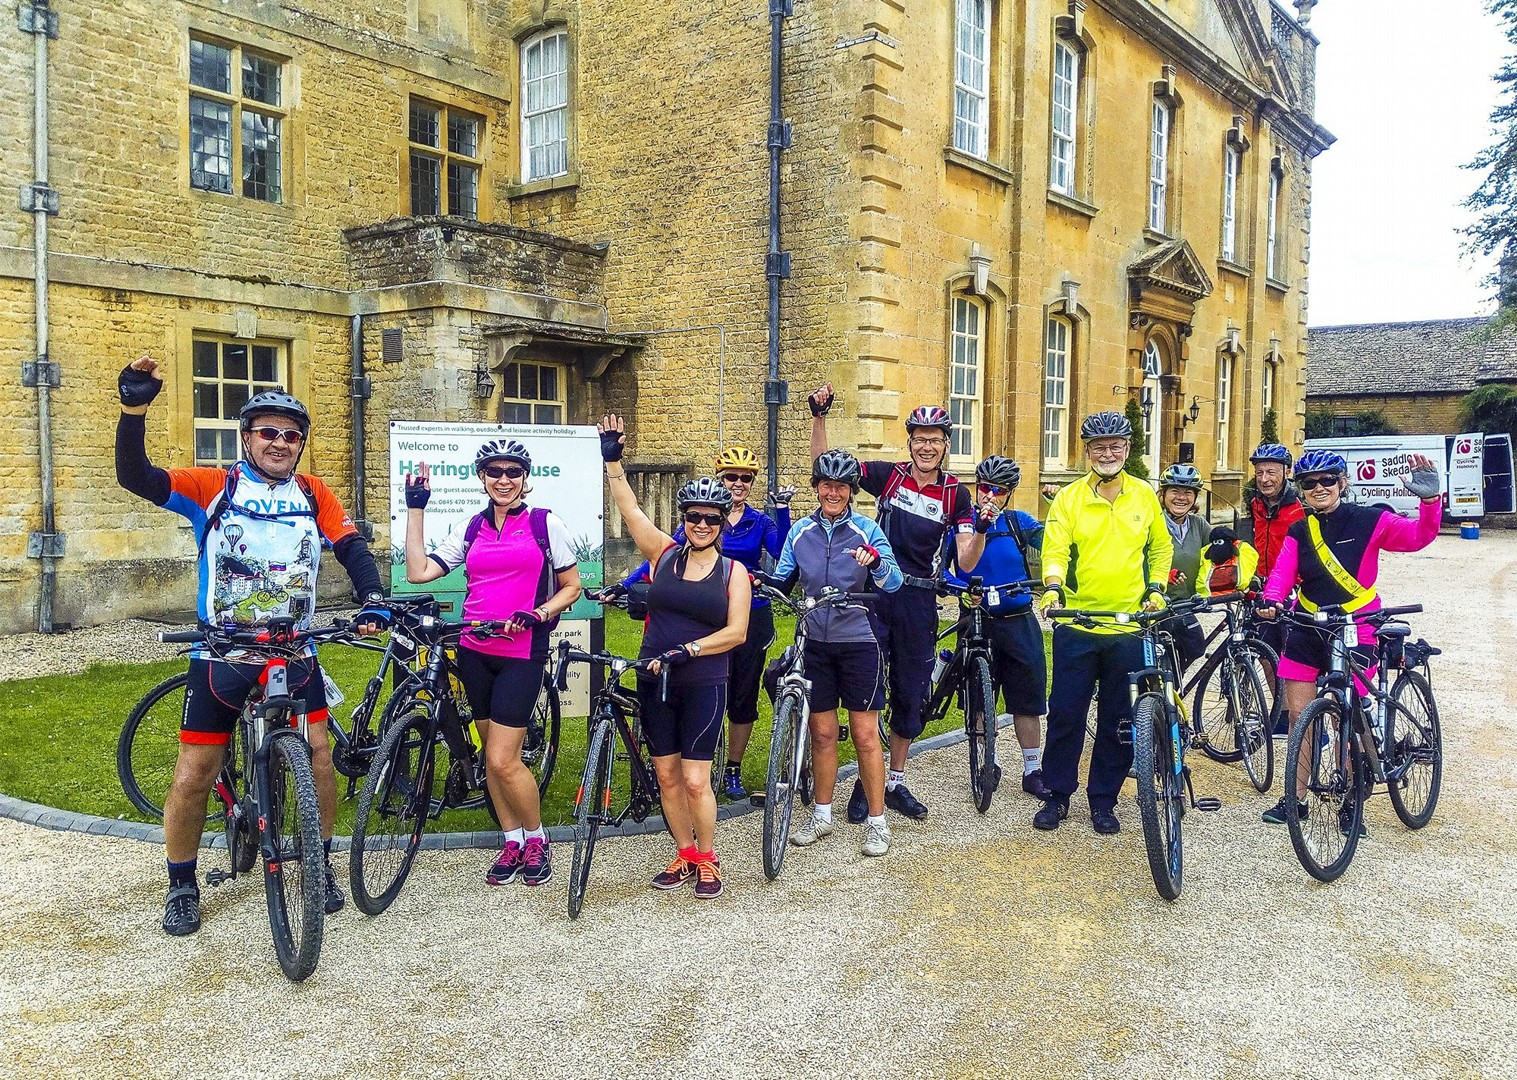 guided-uk-4-day-cycling-group-holiday-solo-traveller-happy-time.jpg - UK - Cotswolds - Bourton-on-the-Water - Guided Leisure Cycling Holiday - Leisure Cycling